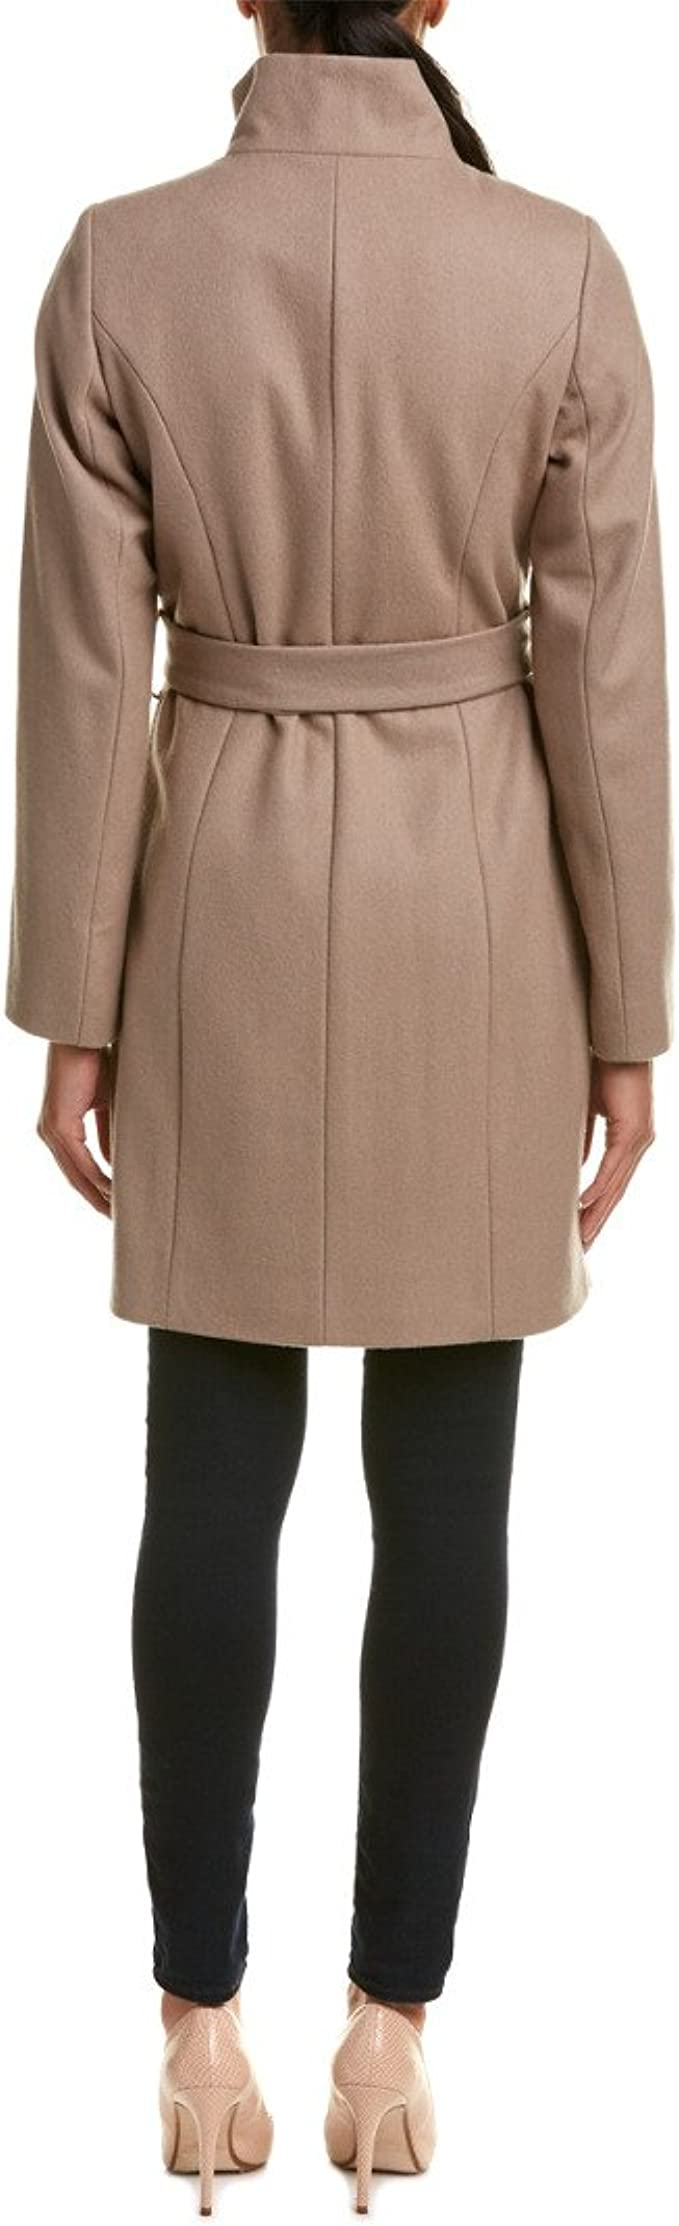 T Tahari Womens Isabelle Asymmentrical Wool Coal with Belt